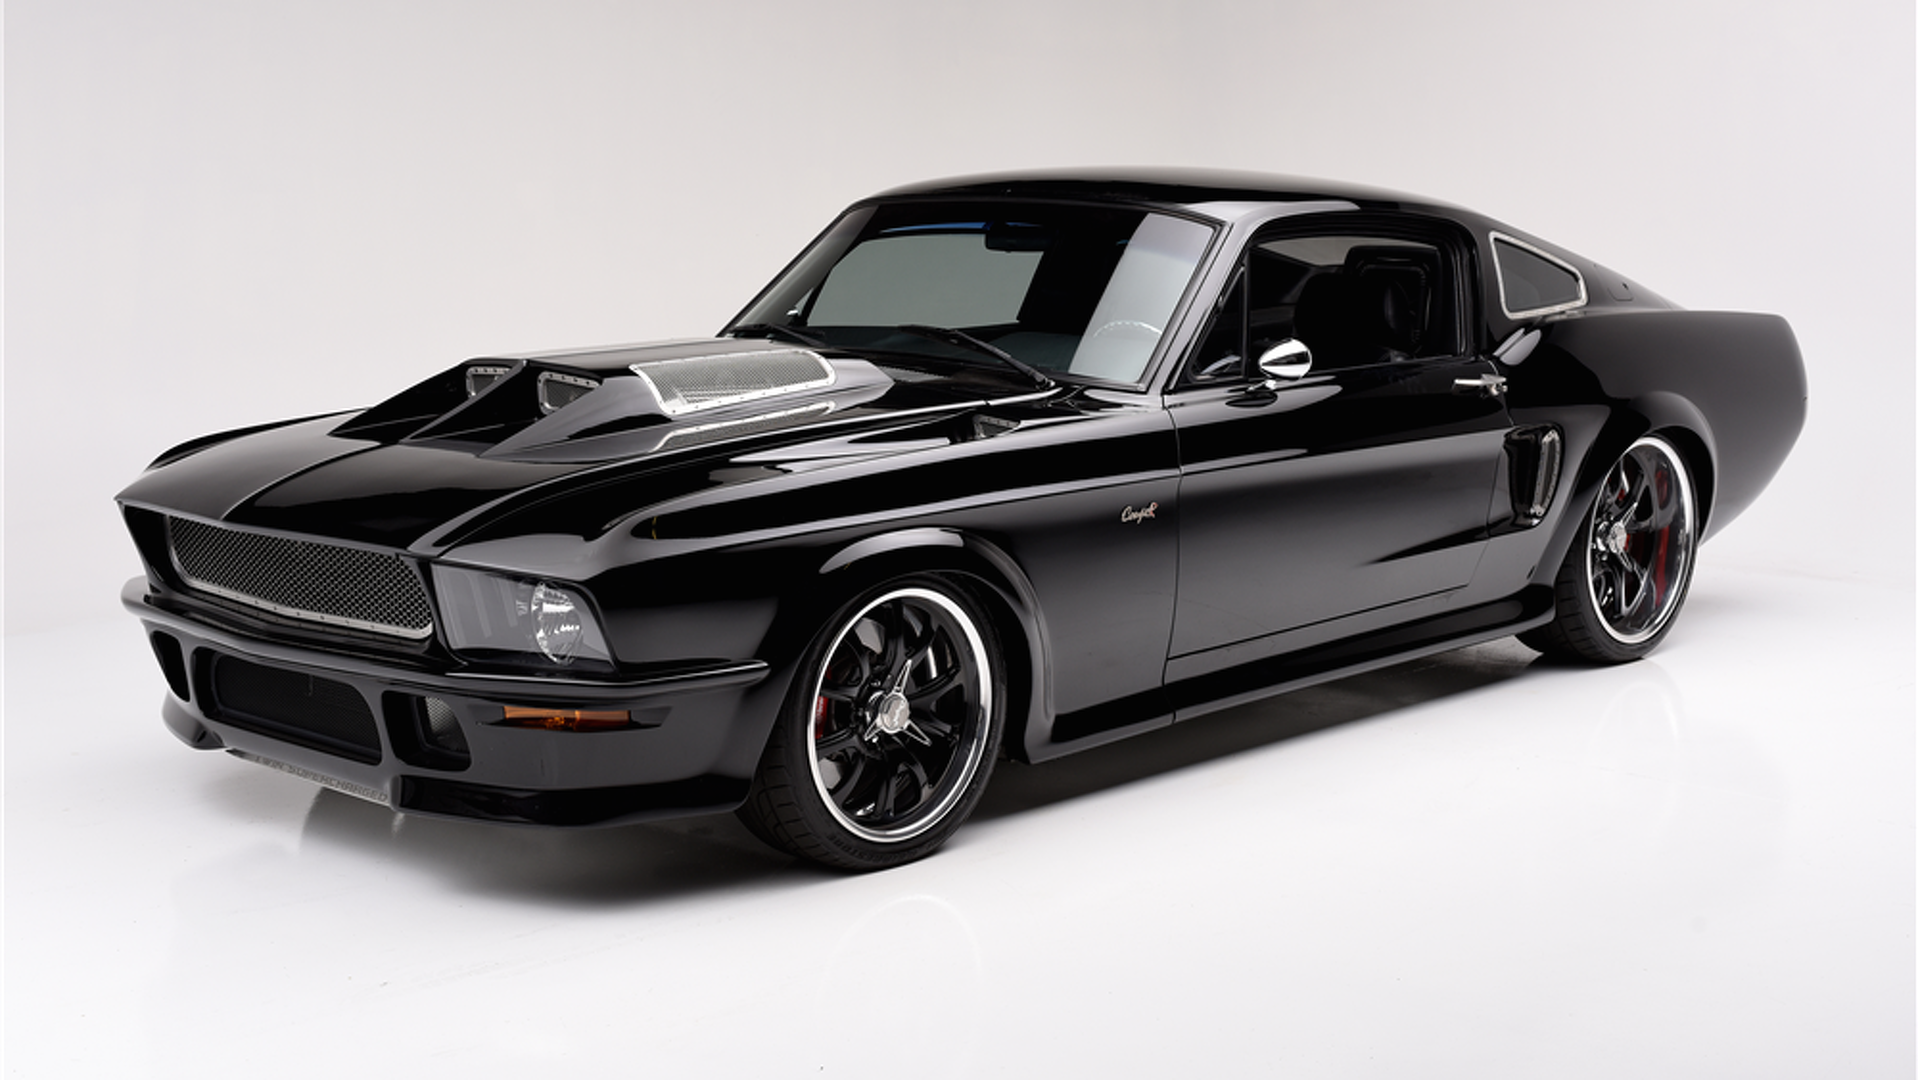 800 Hp Obsidian Ford Mustang Took 1 3 Million To Build